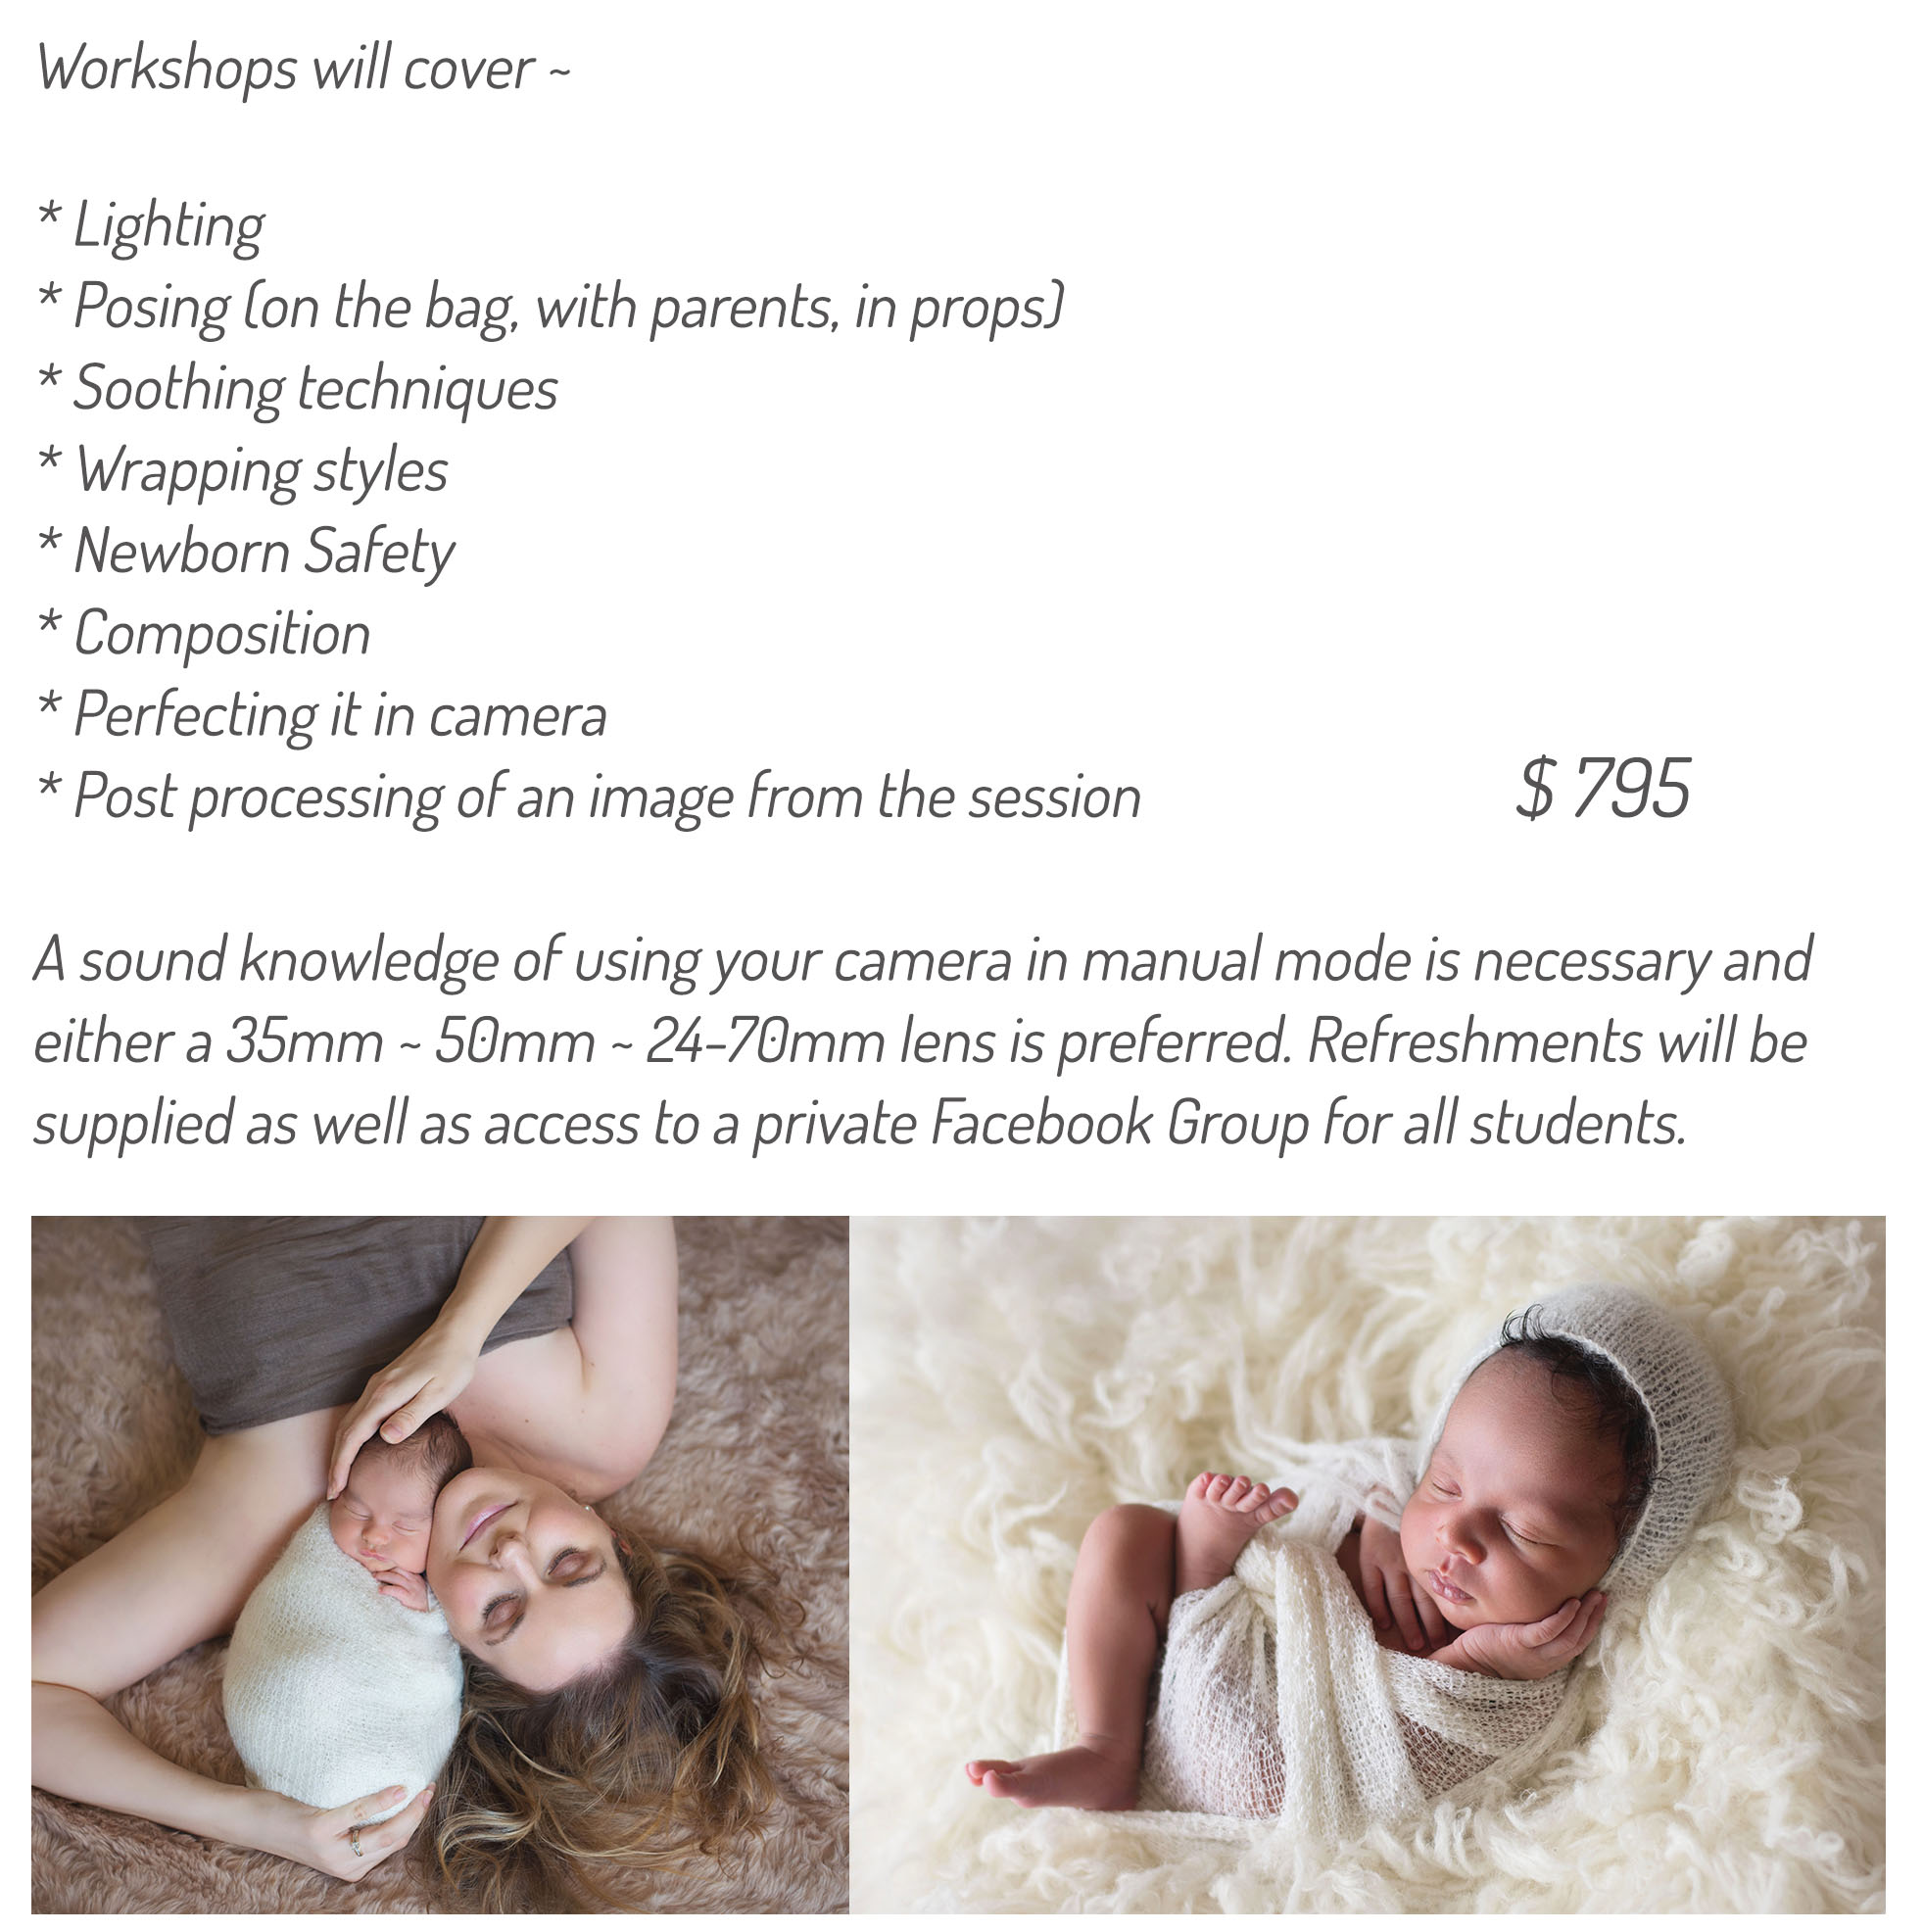 gold coast newborn baby photography workshops mentoring haylie d photography